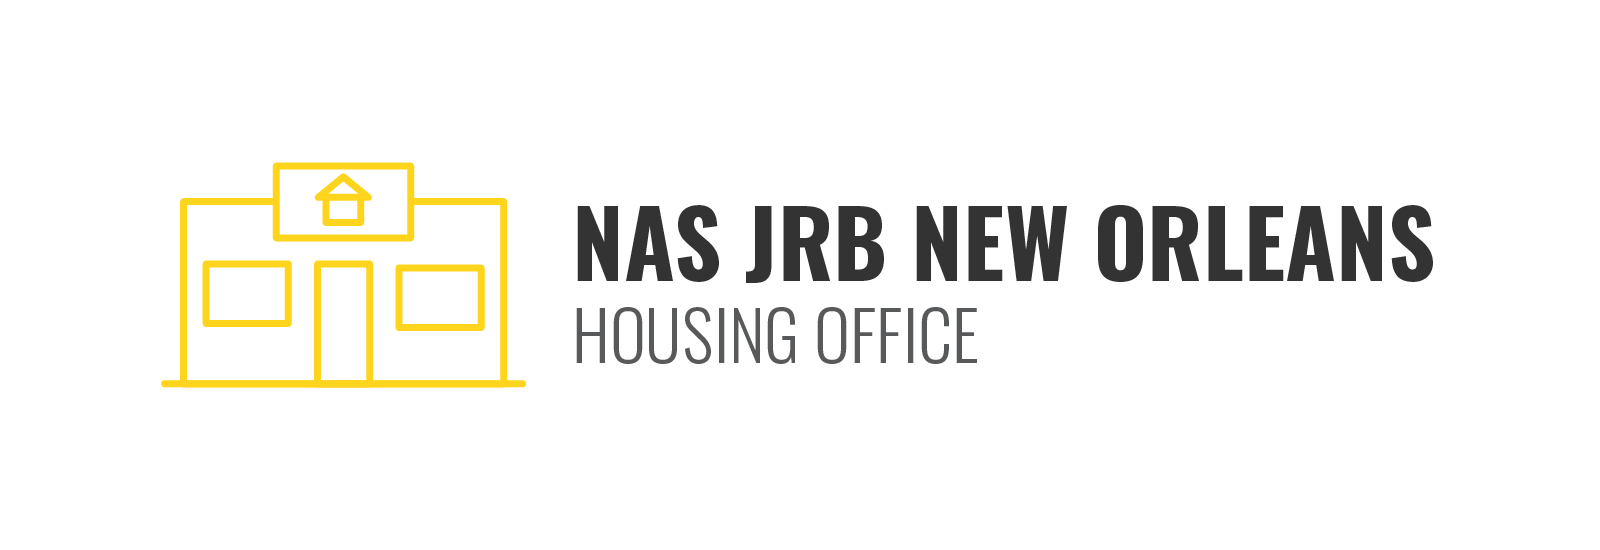 NAS JRB New Orleans Housing Office